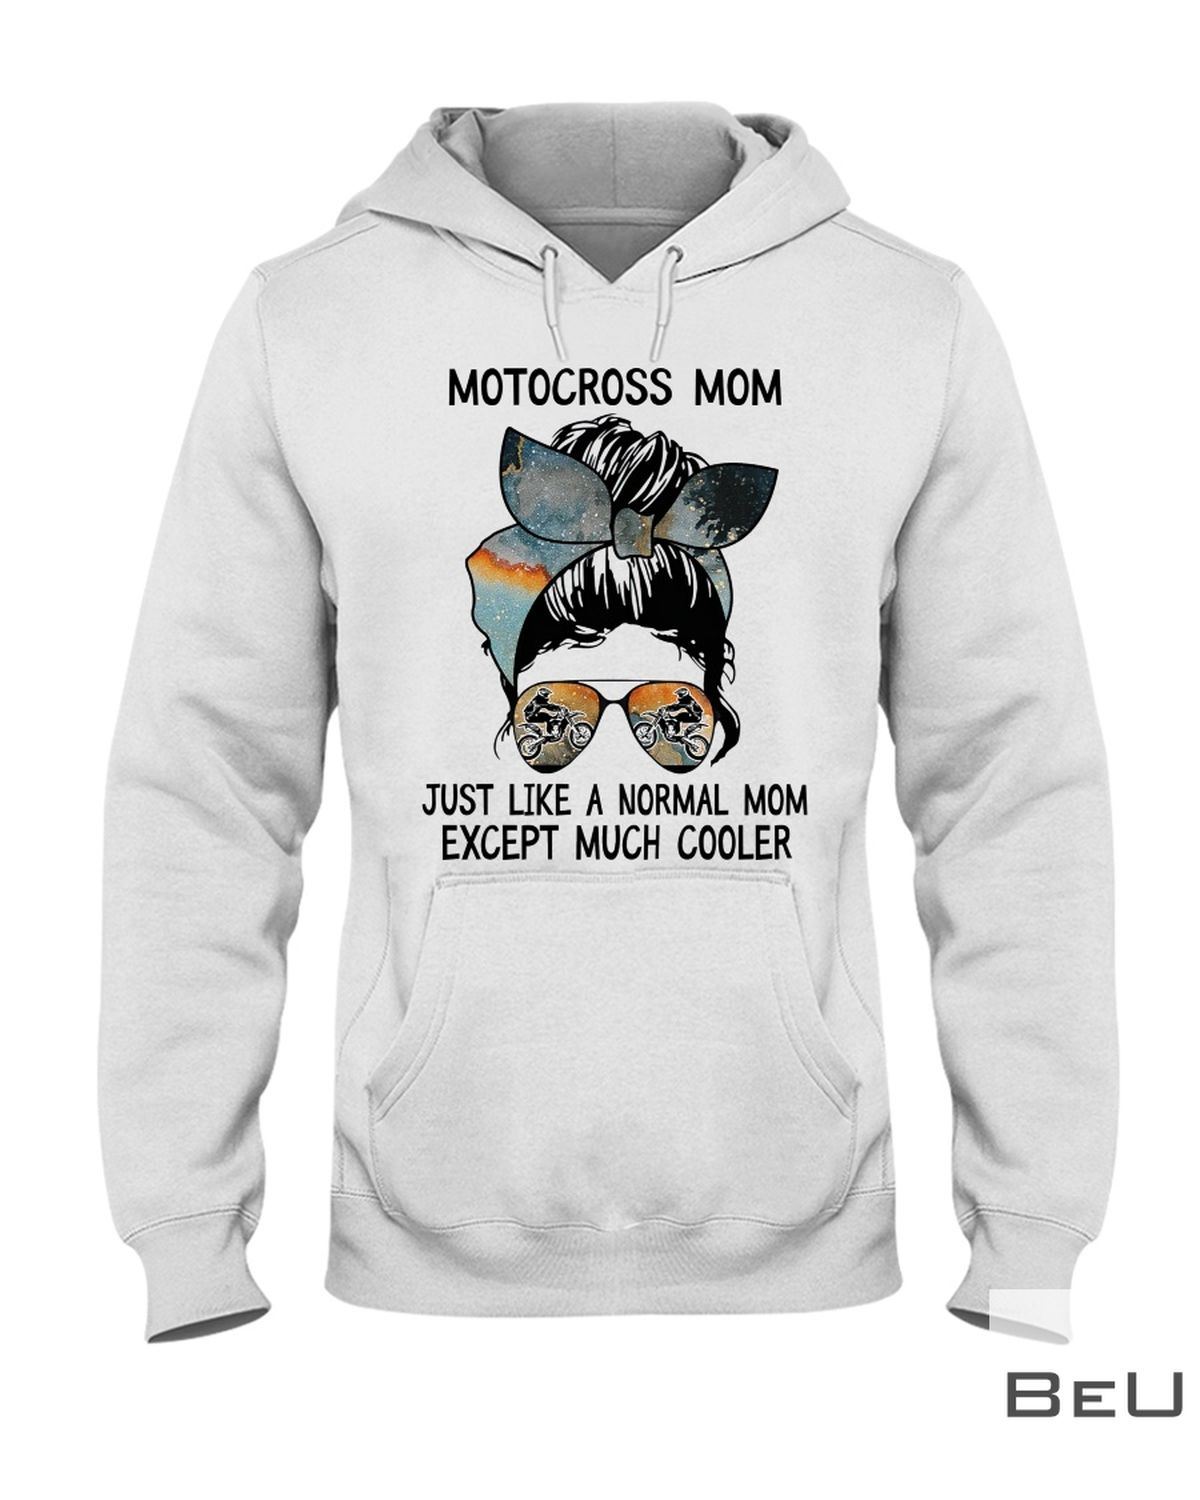 Motocross Mom Just Like A Normal Mom Expect Much Cooler Shirtz